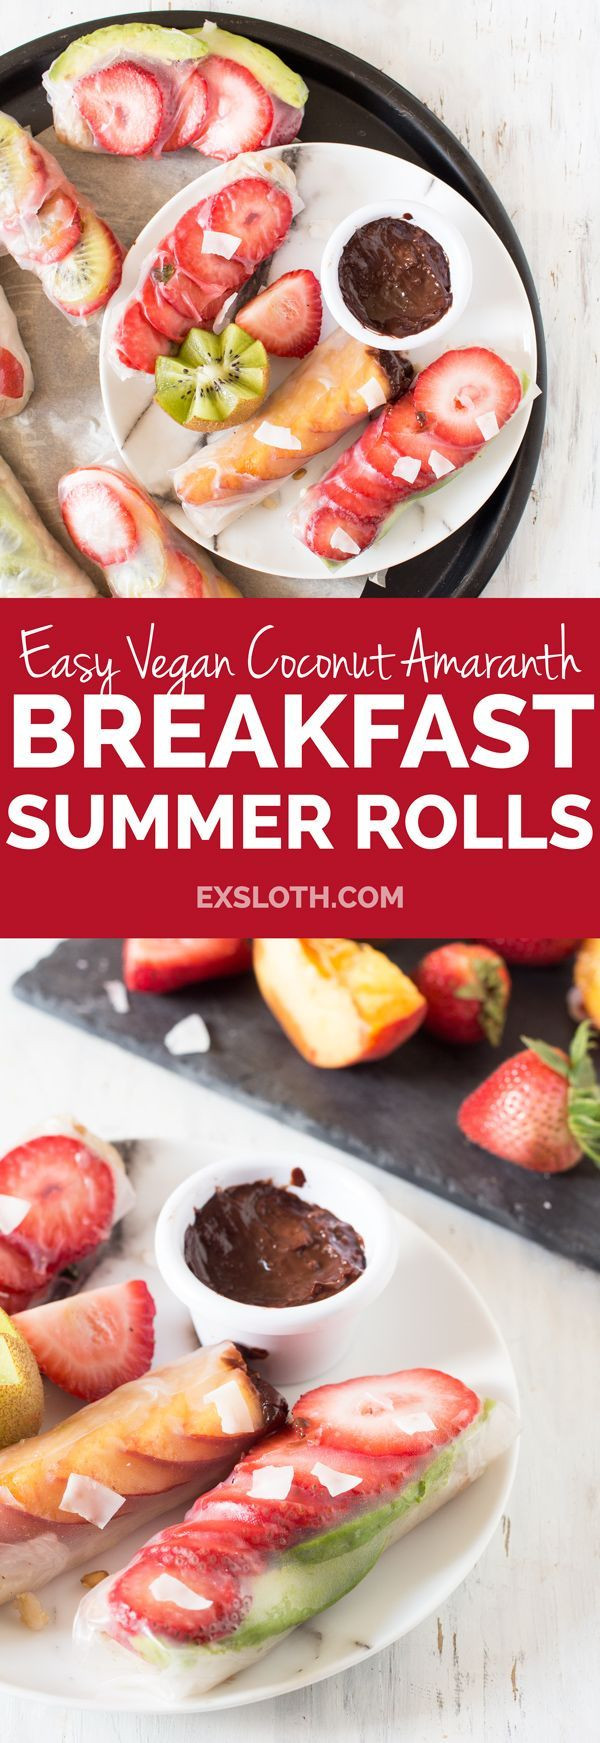 Summer Breakfast Recipe  1892 best images about Plant Based Diet Recipes on